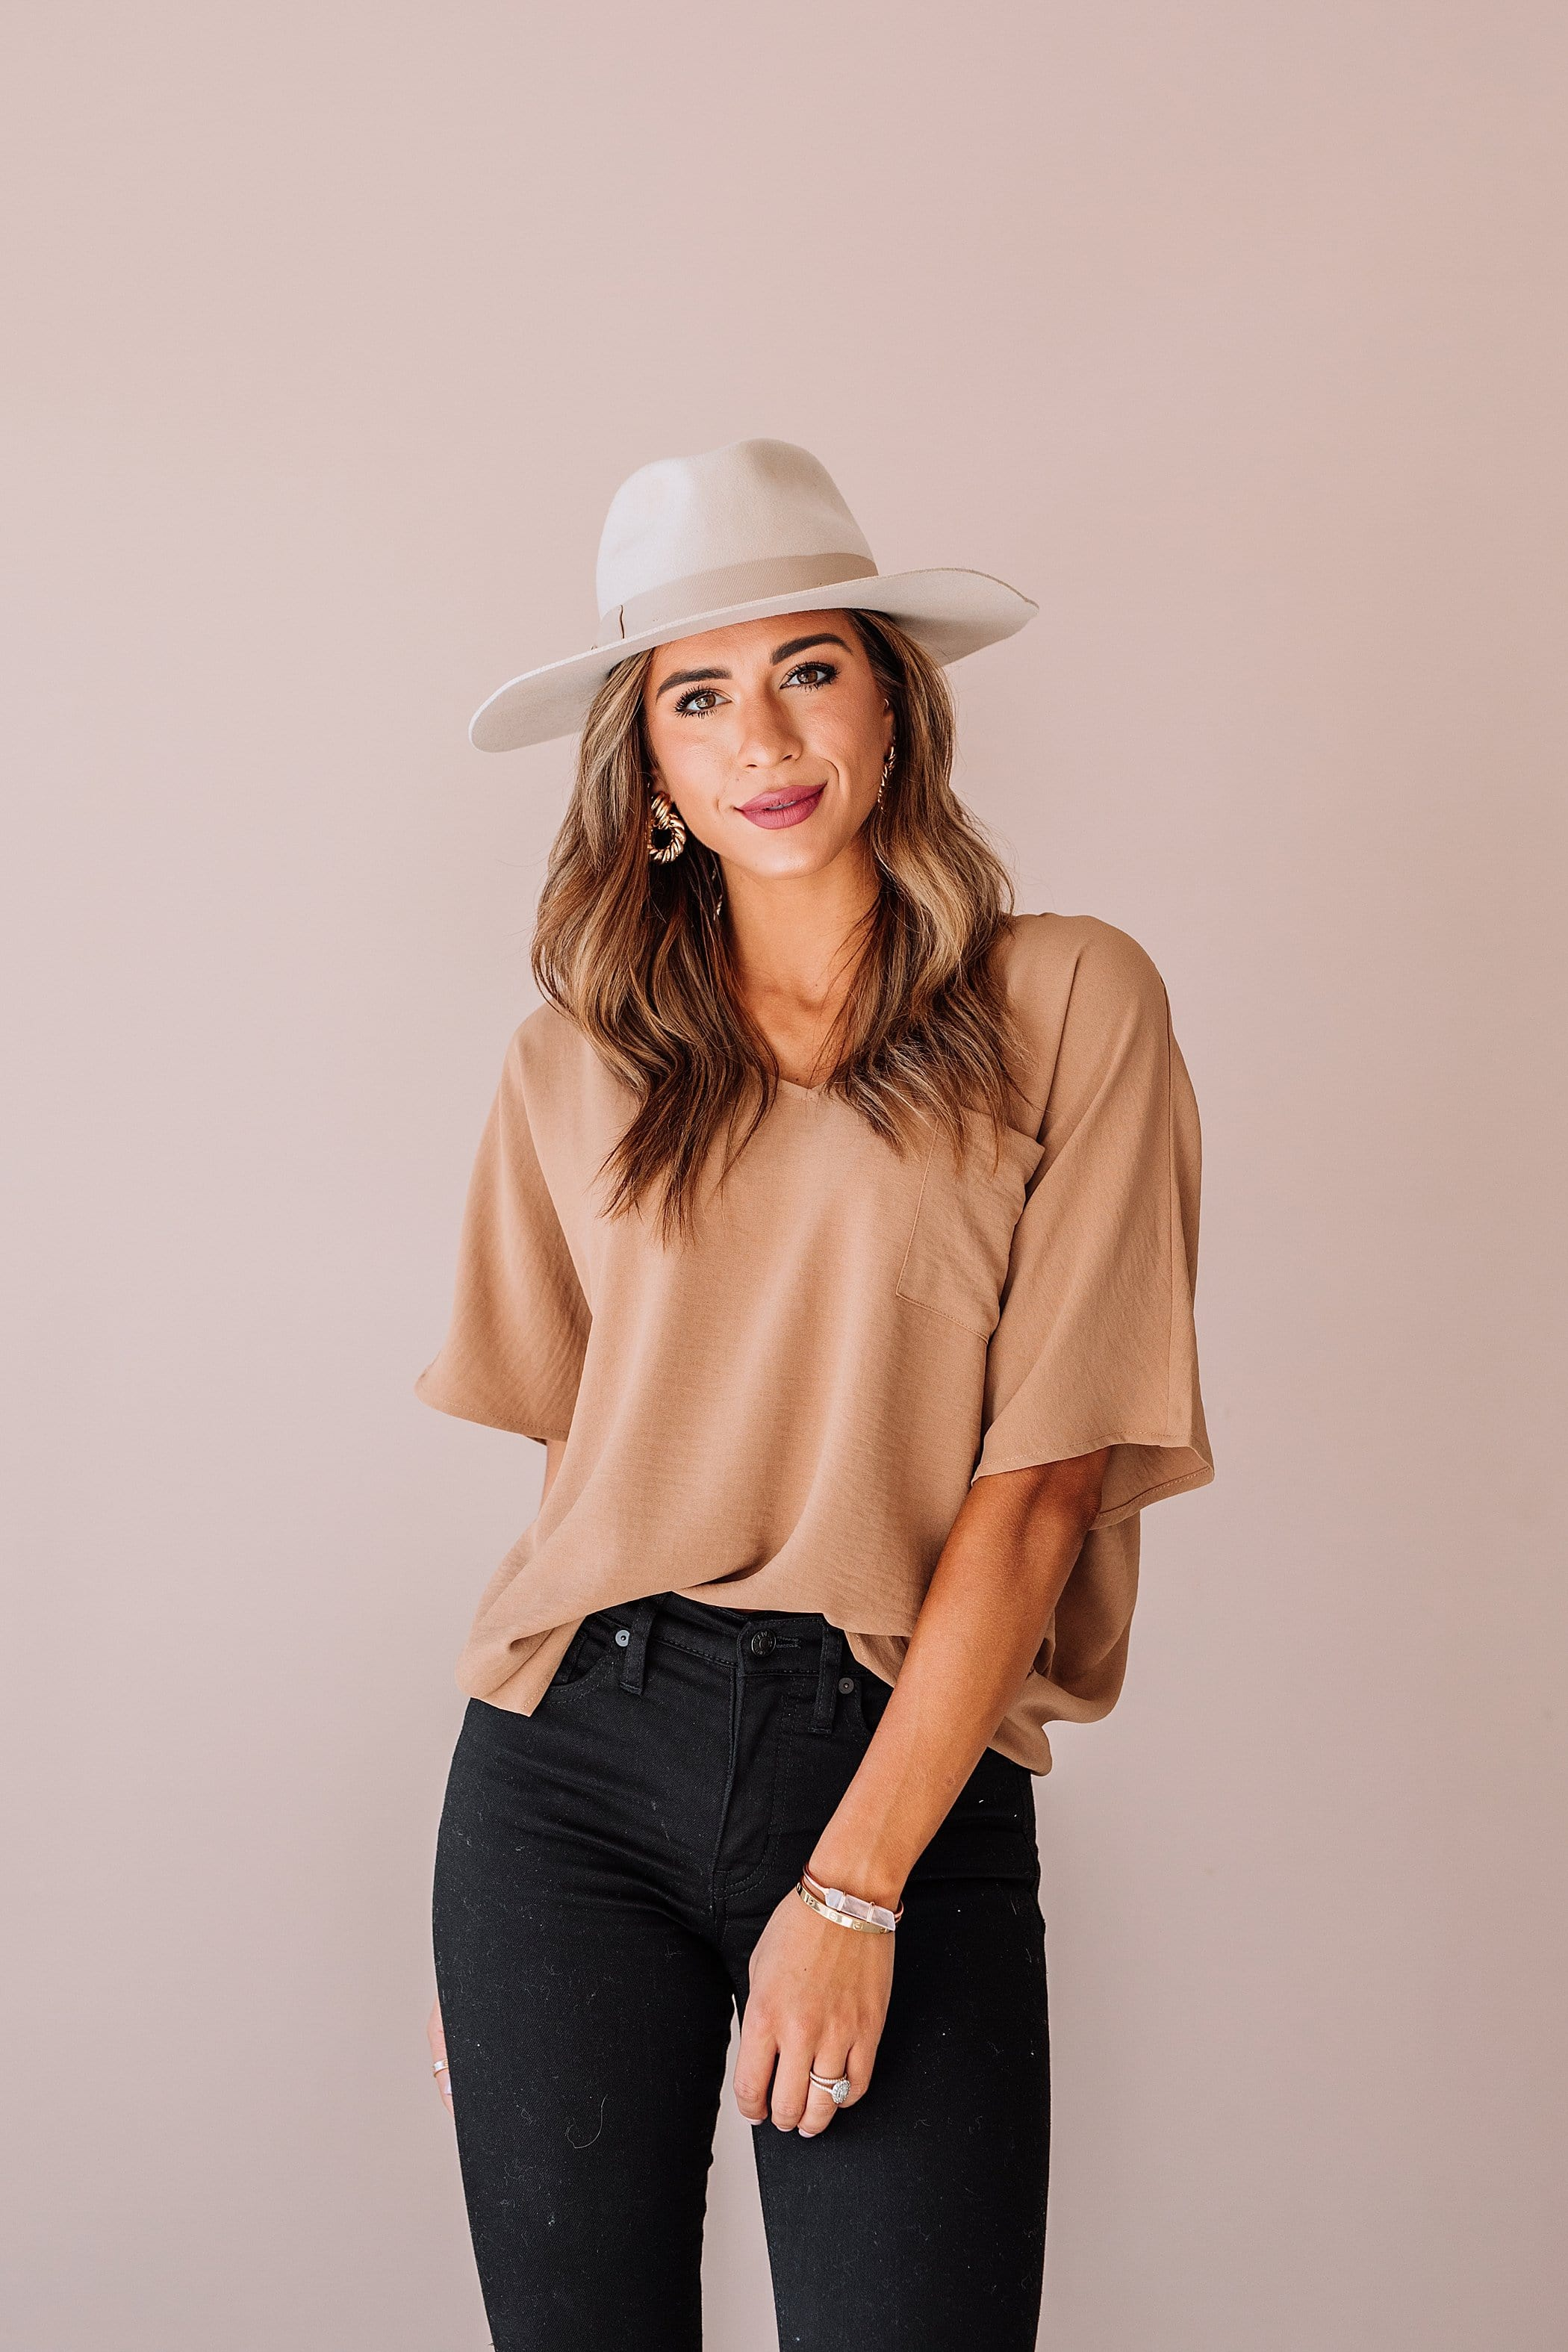 The Medano Pocket Top in Camel, Mauve and Ivory